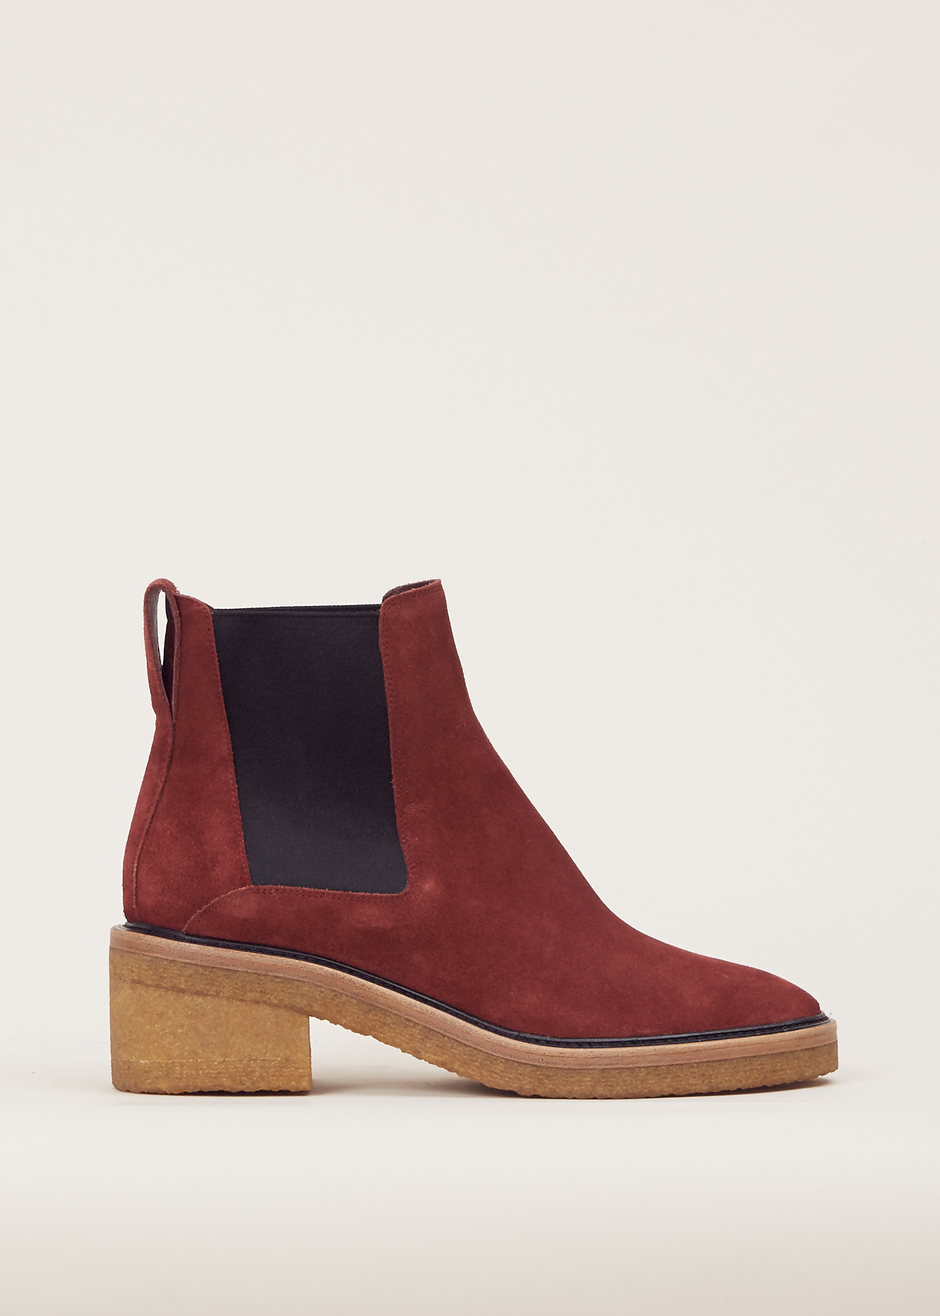 Dries boots